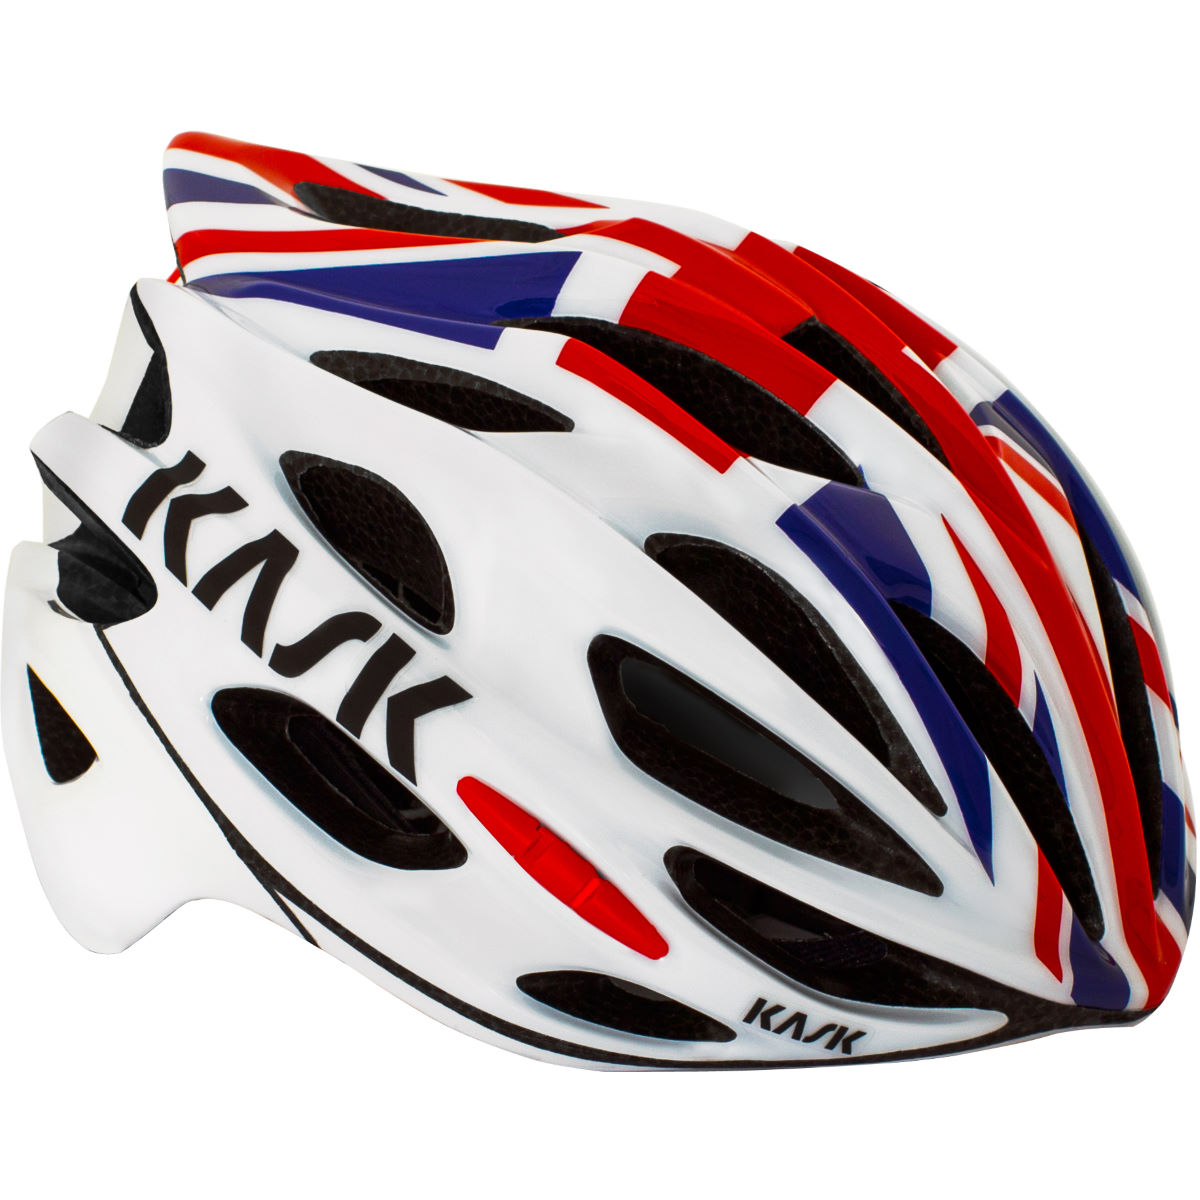 Casque de route Kask Mojito (édition du Team GB) - Med 48 - 58cm